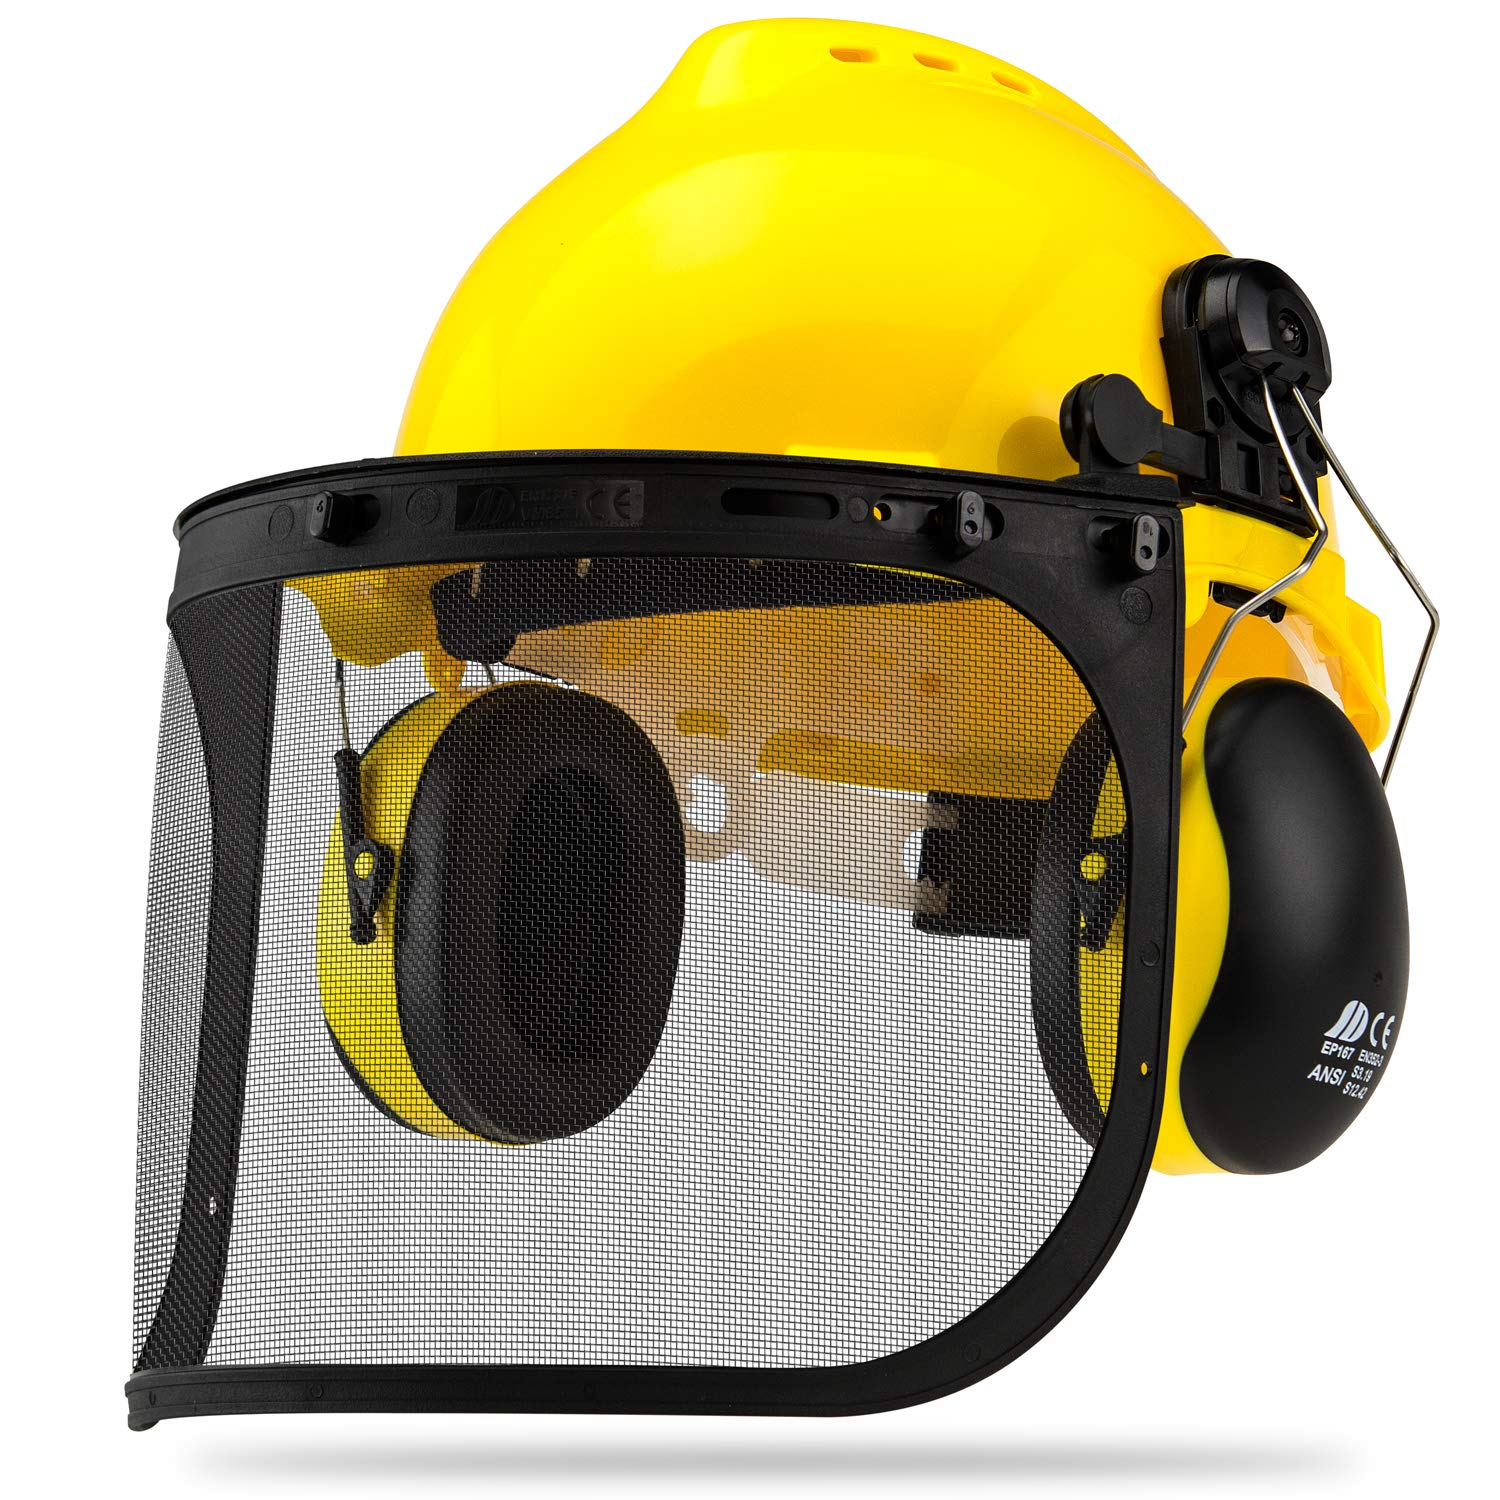 Neiko 53880A 4-in-1 Safety Helmet with Hearing and Face Protection, Heavy Duty Hard Hat | Removable Ear Muffs and Visors by Neiko (Image #1)